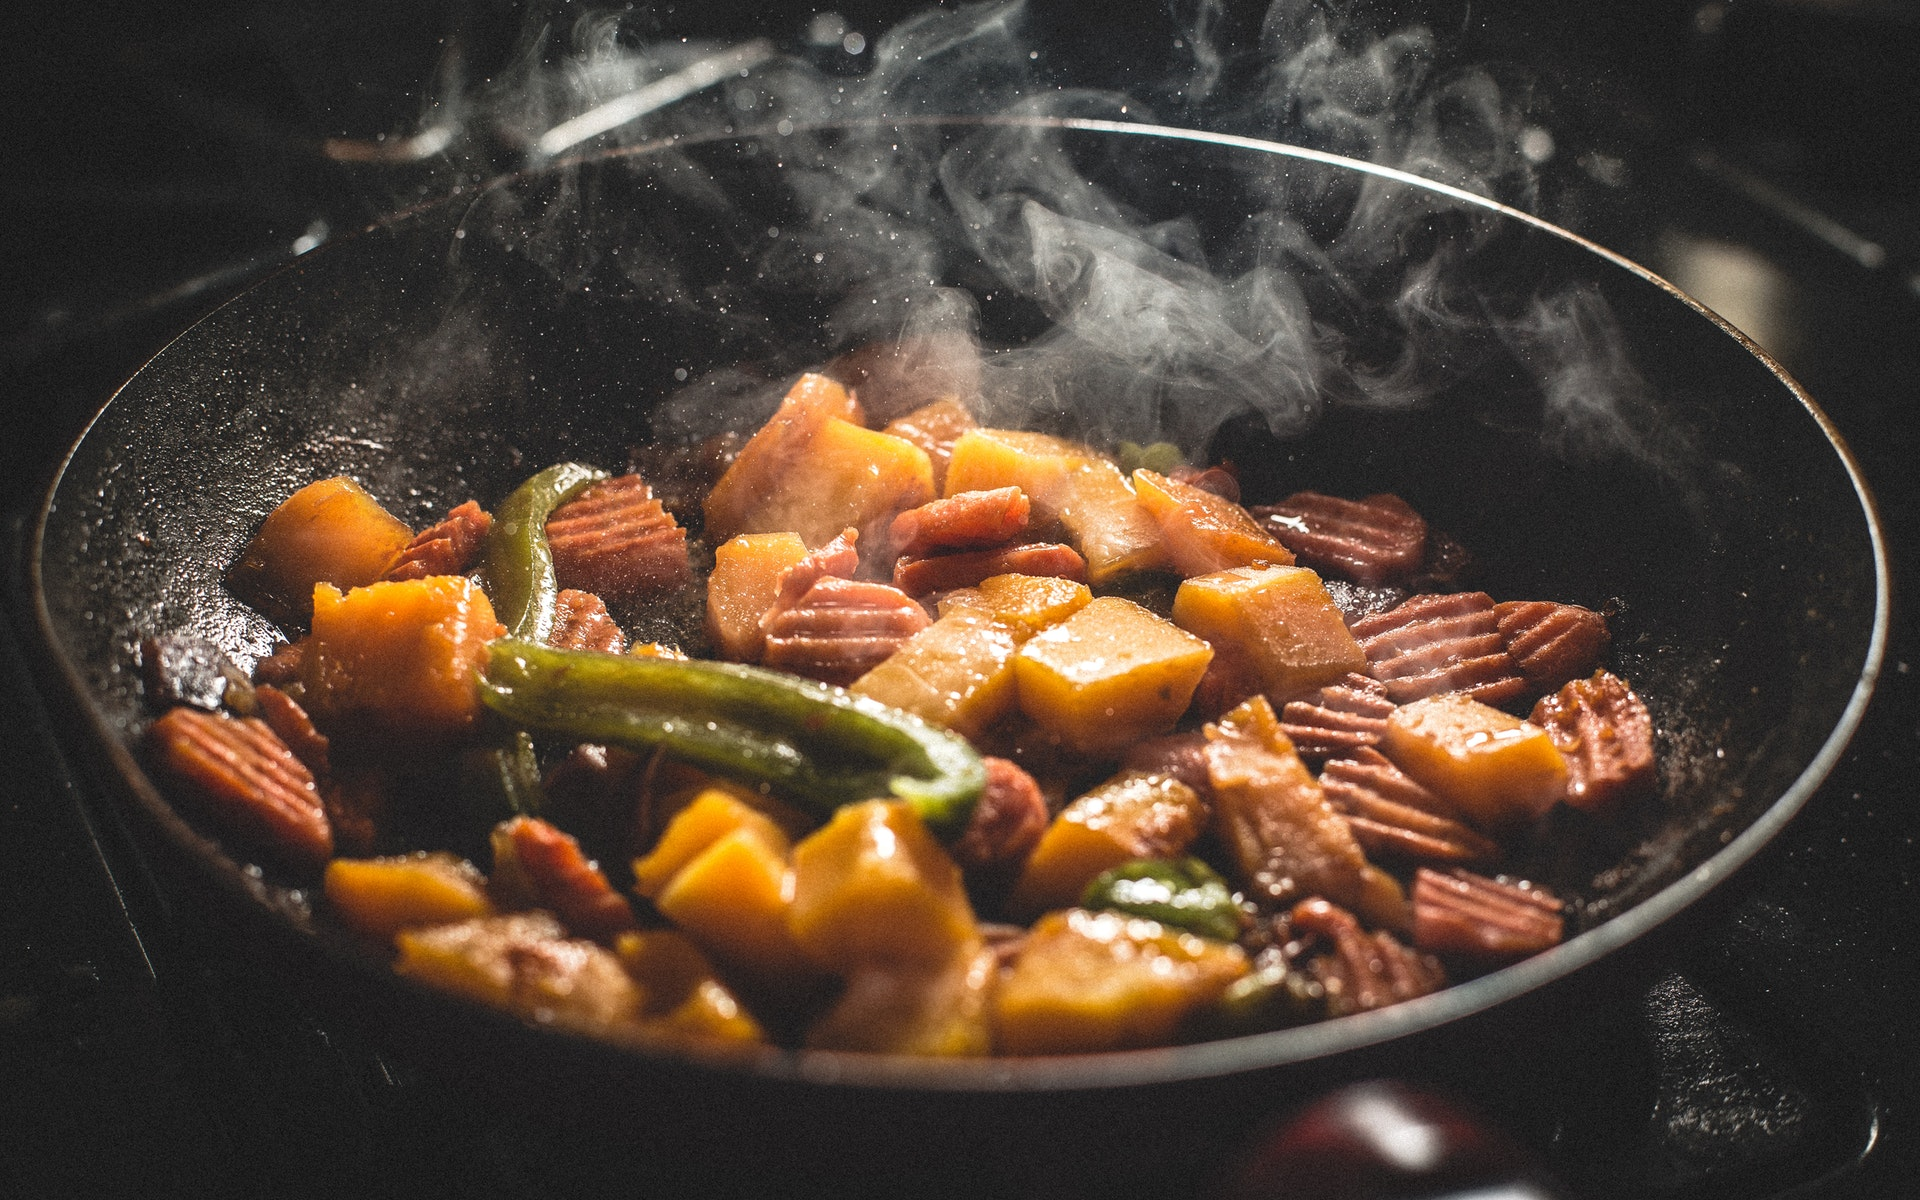 This skillet recipe is healthy, easy, and soy-free! - IMAGE VIA PEXELS